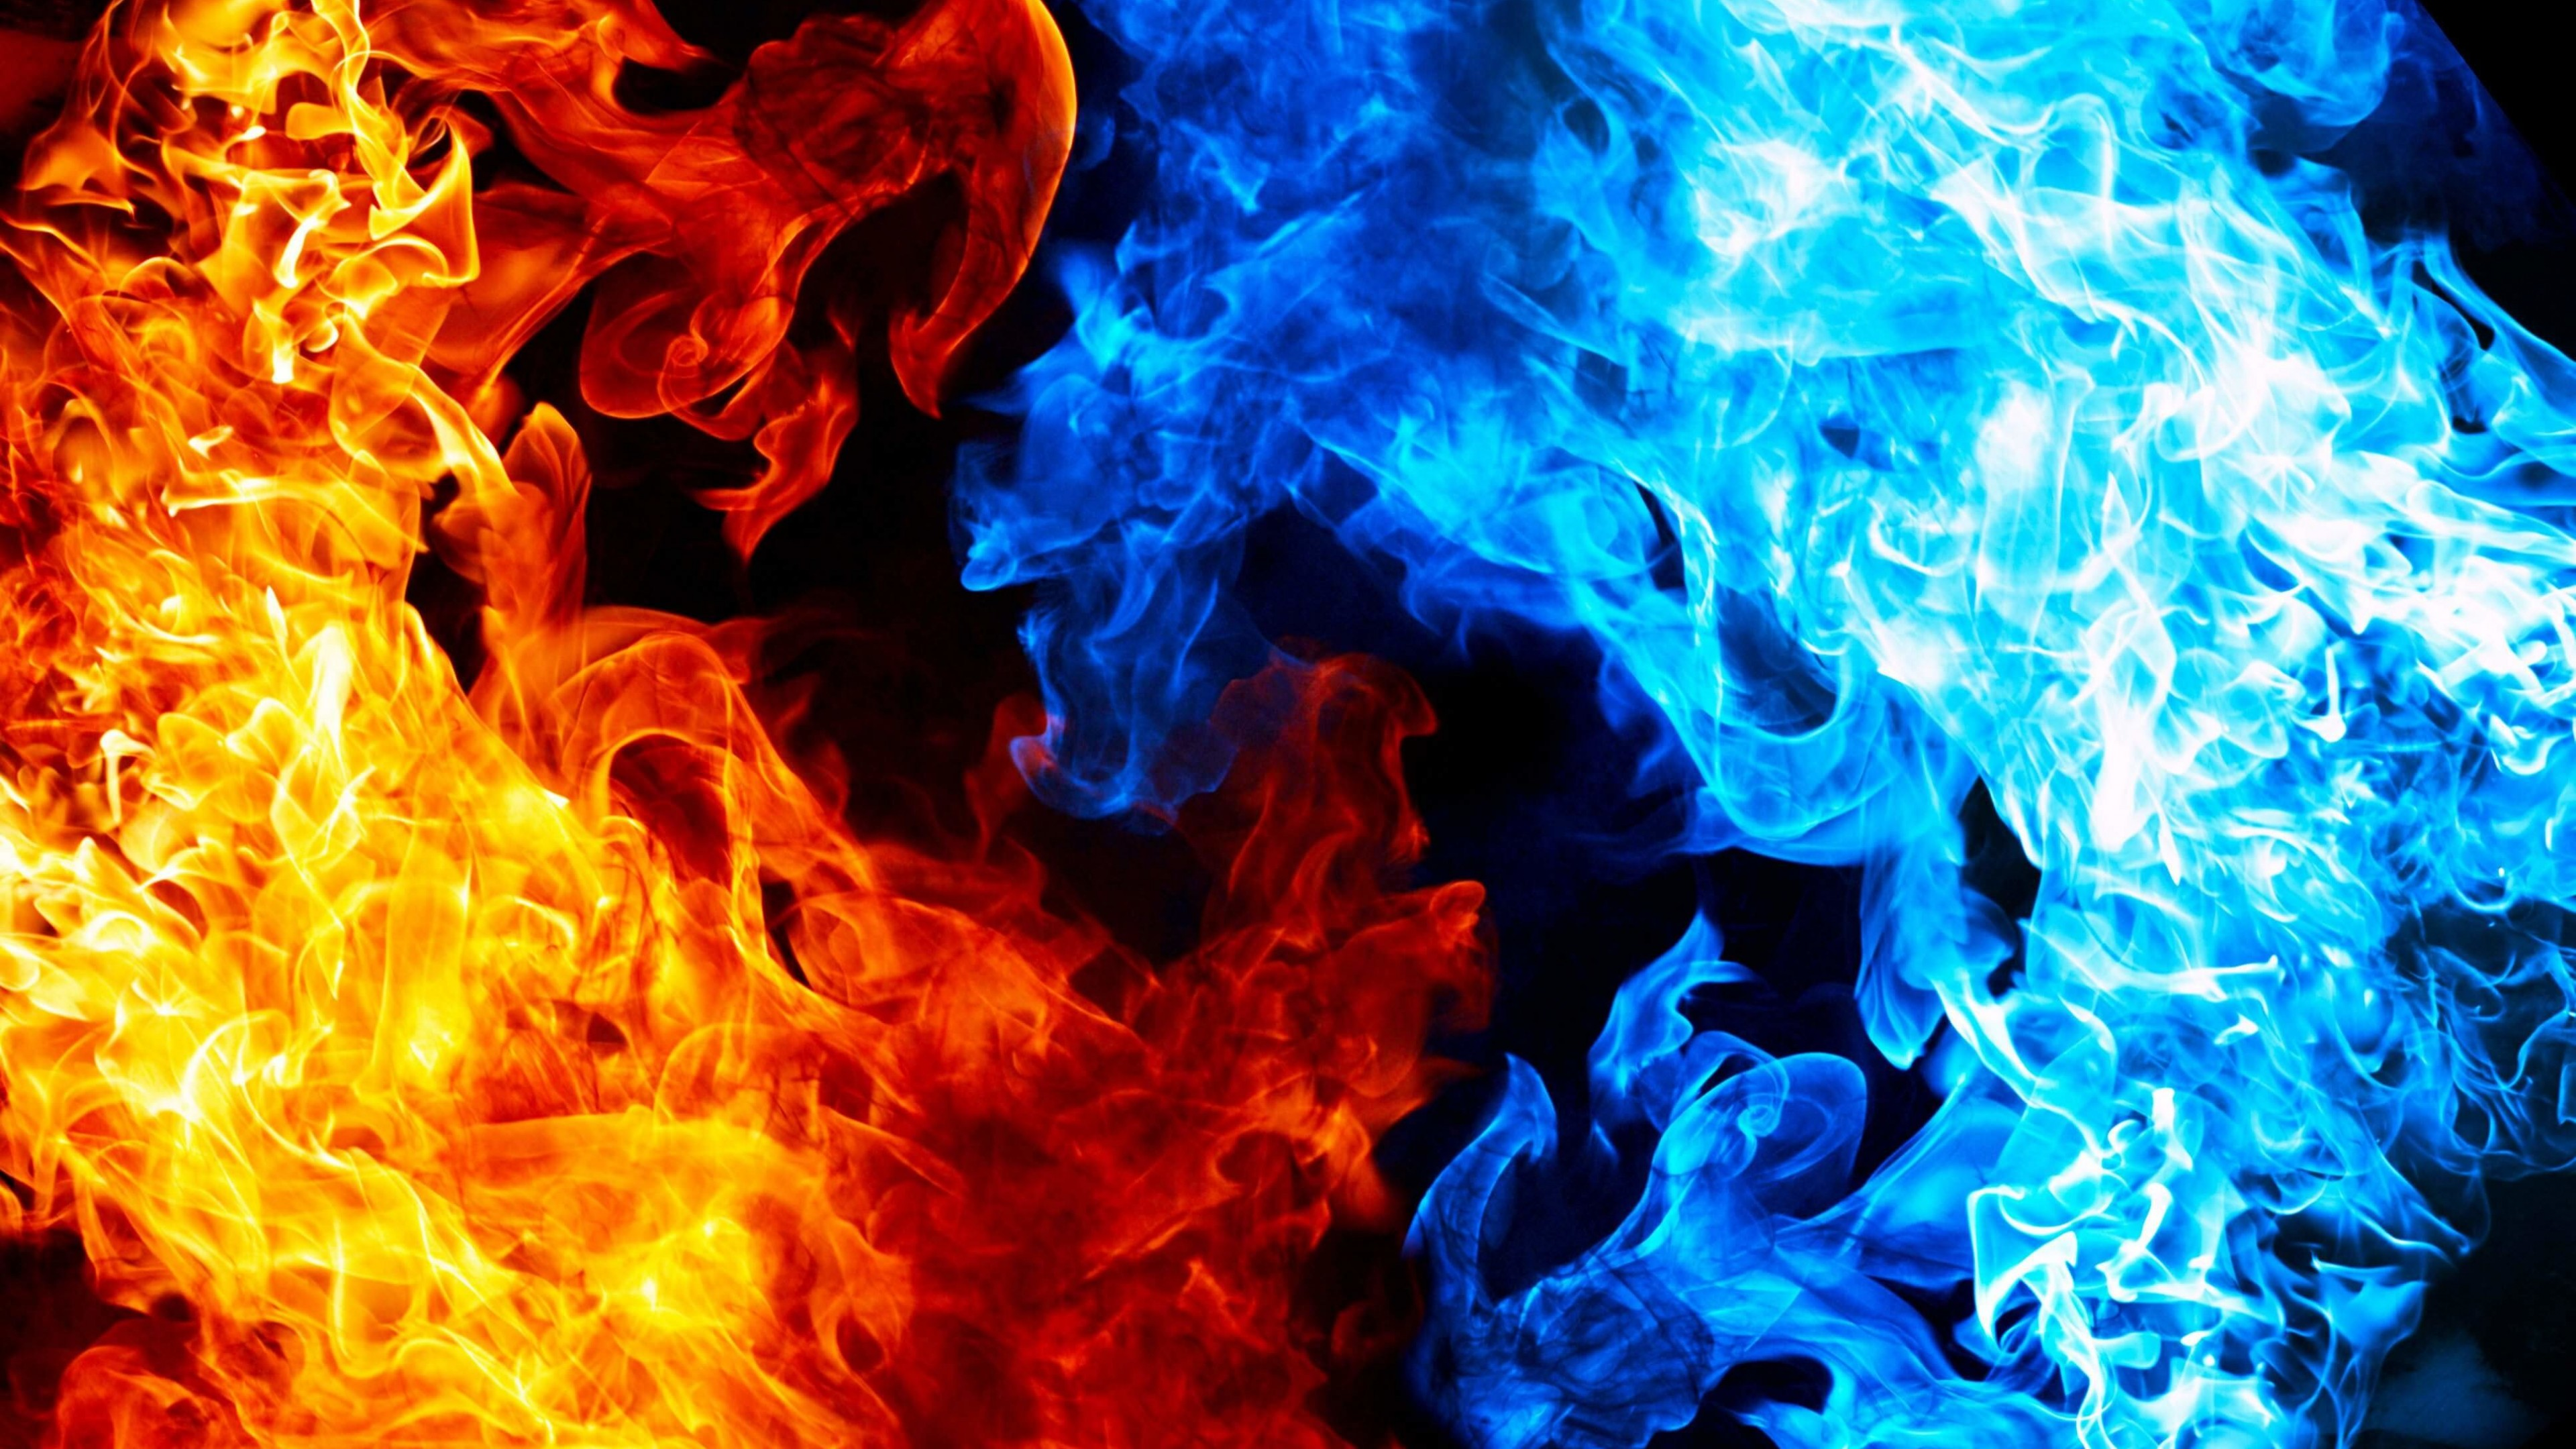 Blue And Red Fire Wallpaper for Desktop 4K 3840x2160